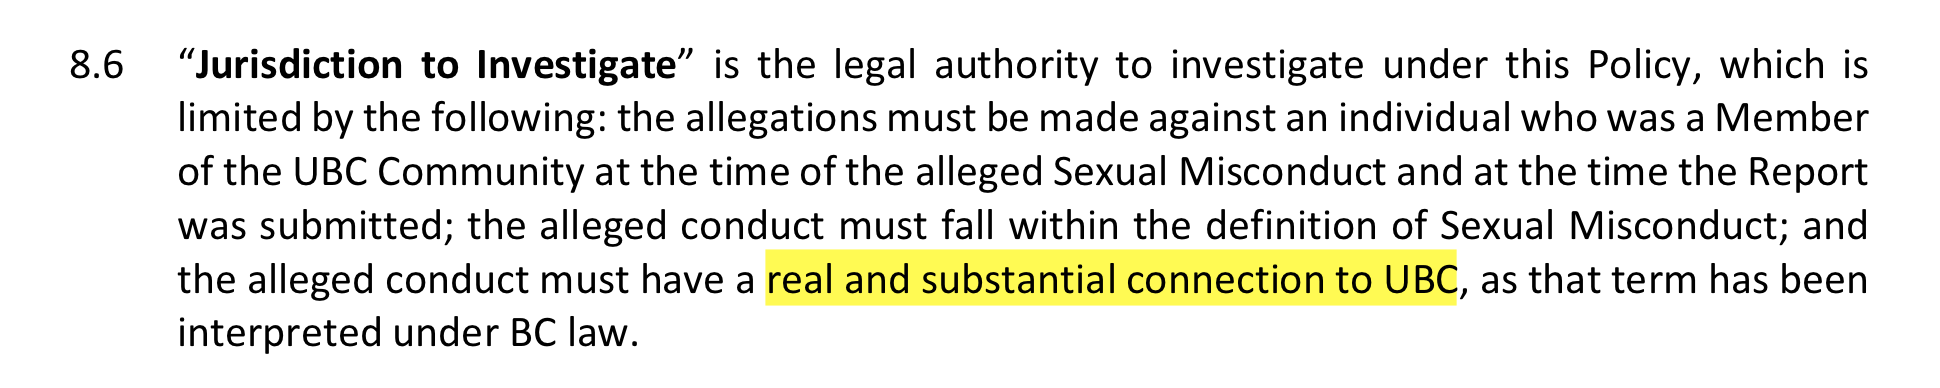 Excerpt from UBC Policy 131.